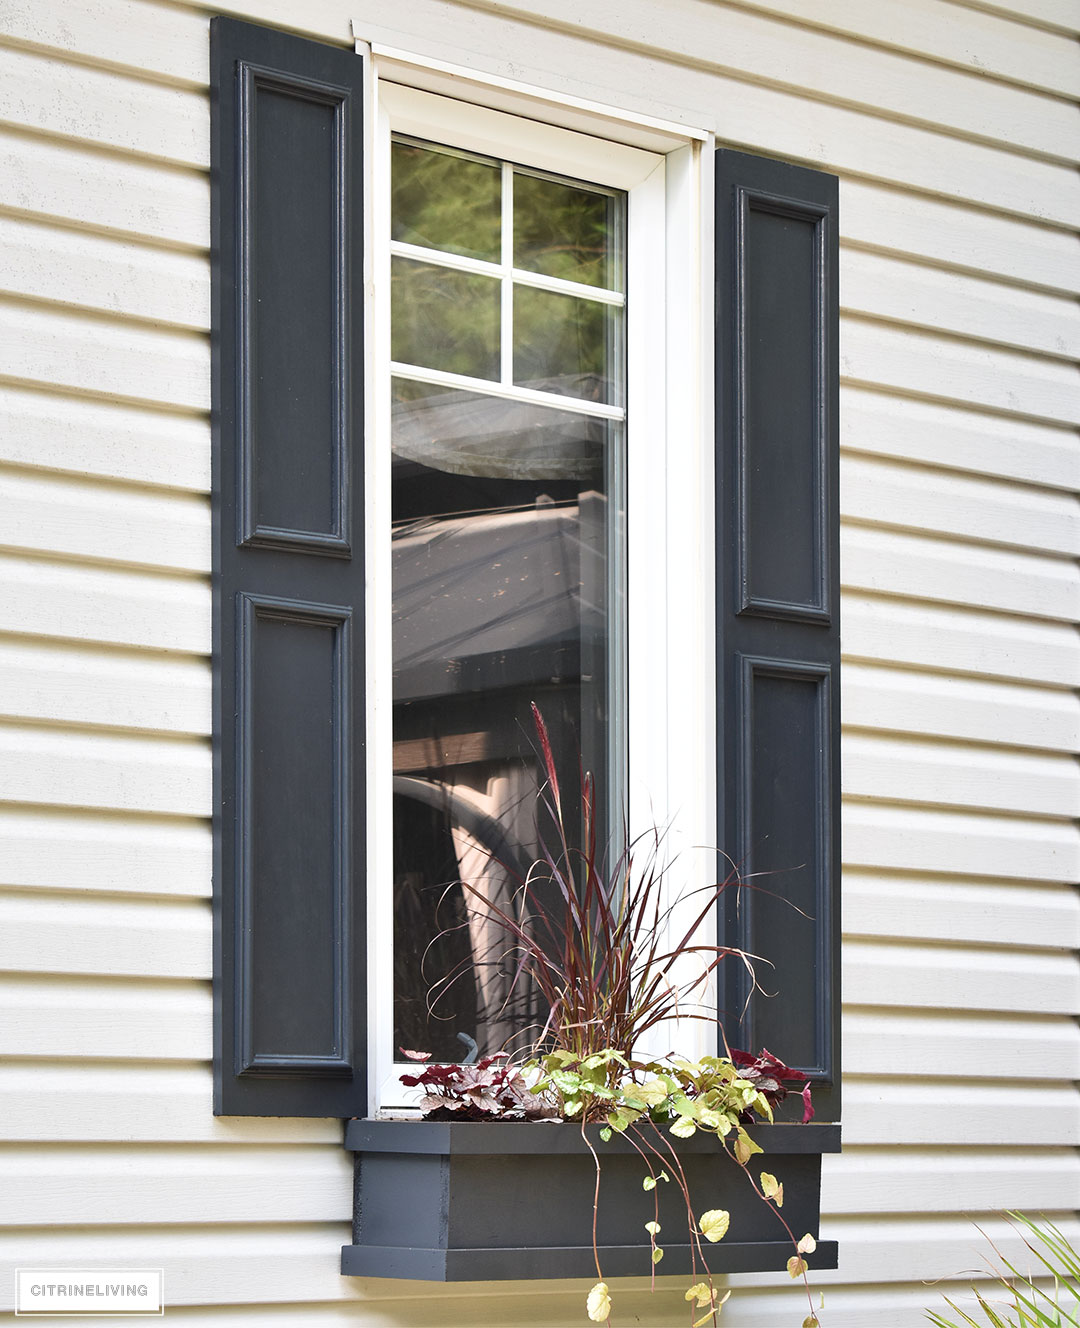 DIY black shutters and window boxes add character to this window.